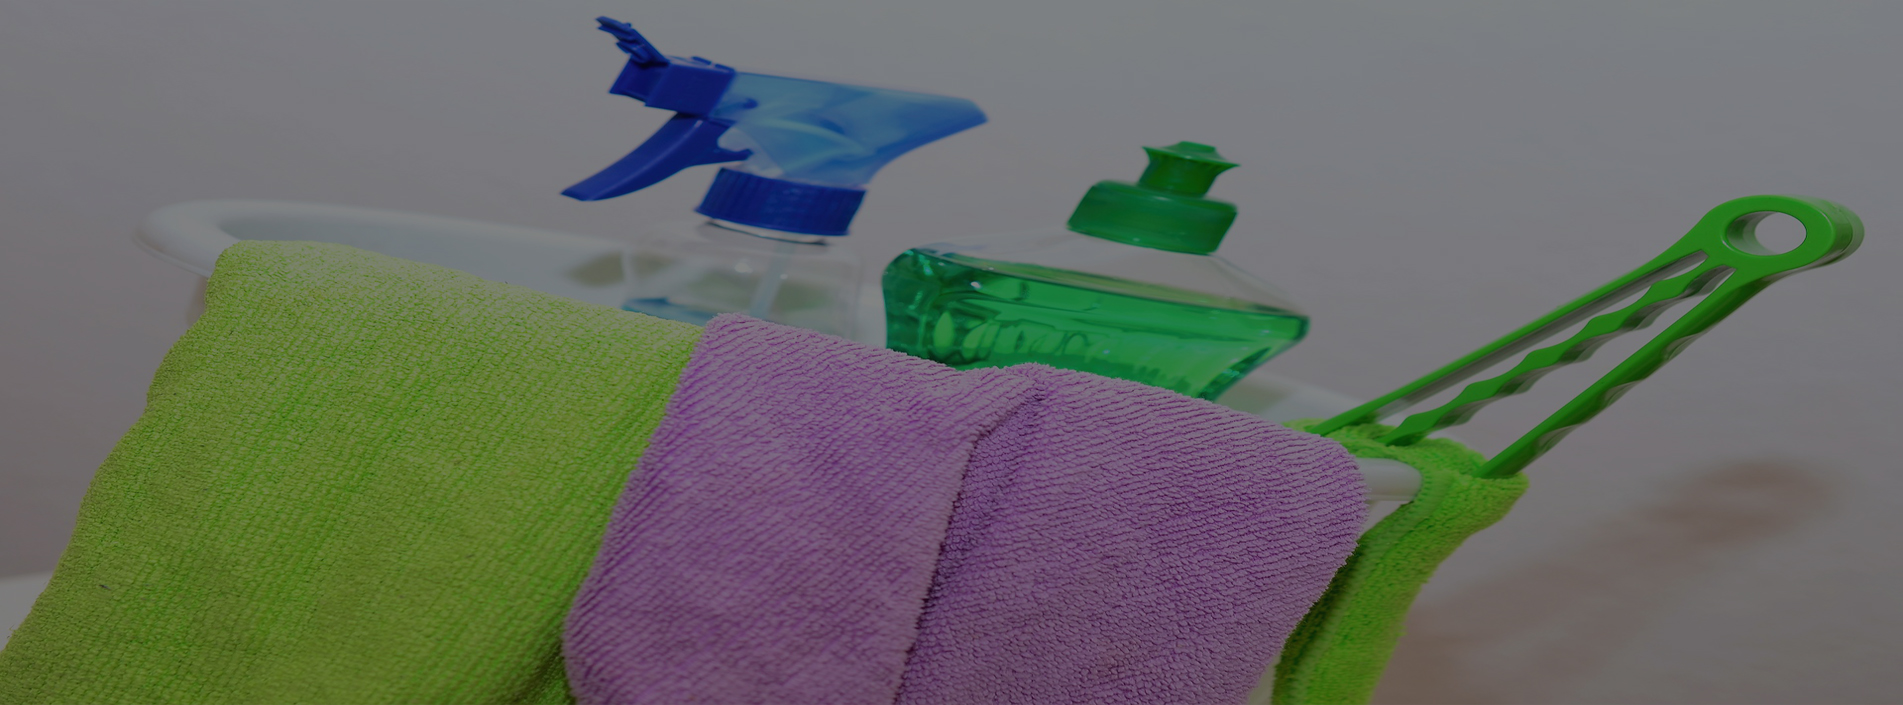 MKK cleaning services